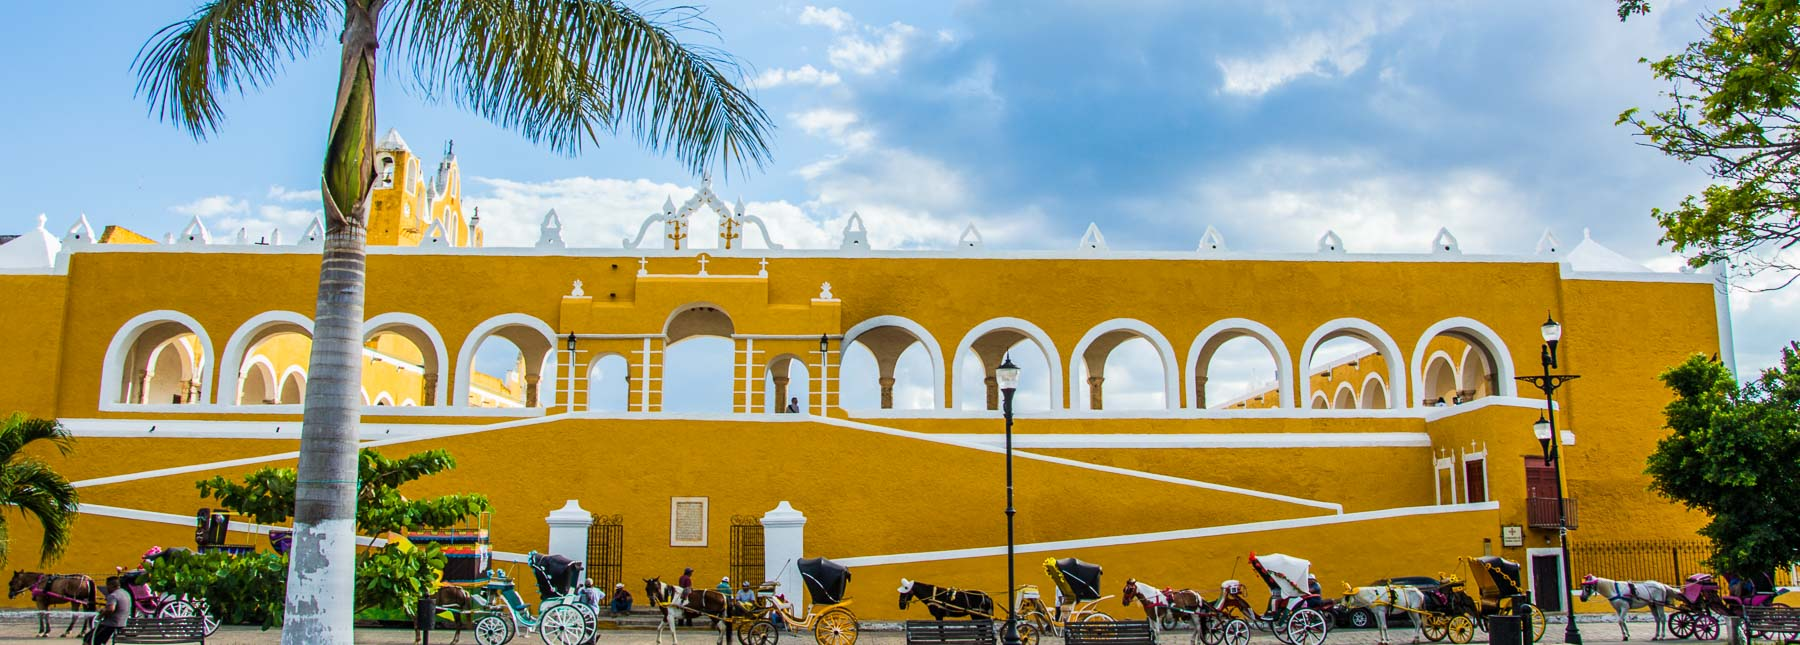 Take In The Magic of Izamal, Mexico's Yellow City